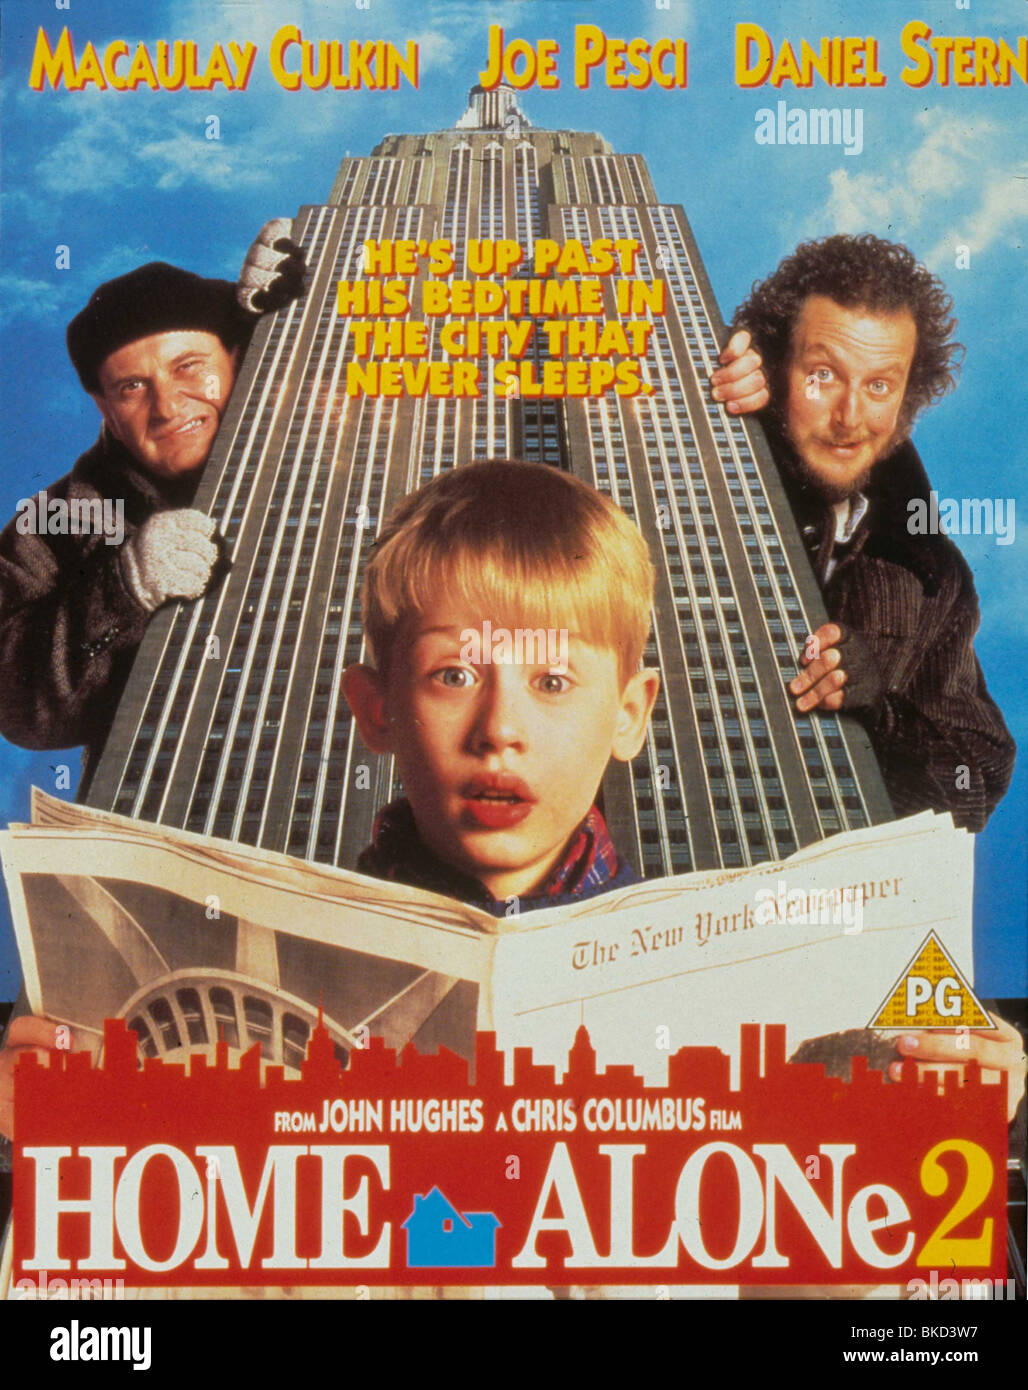 Home Alone 2 Lost In New York 1992 Poster Hm2 064 Stock Photo Alamy